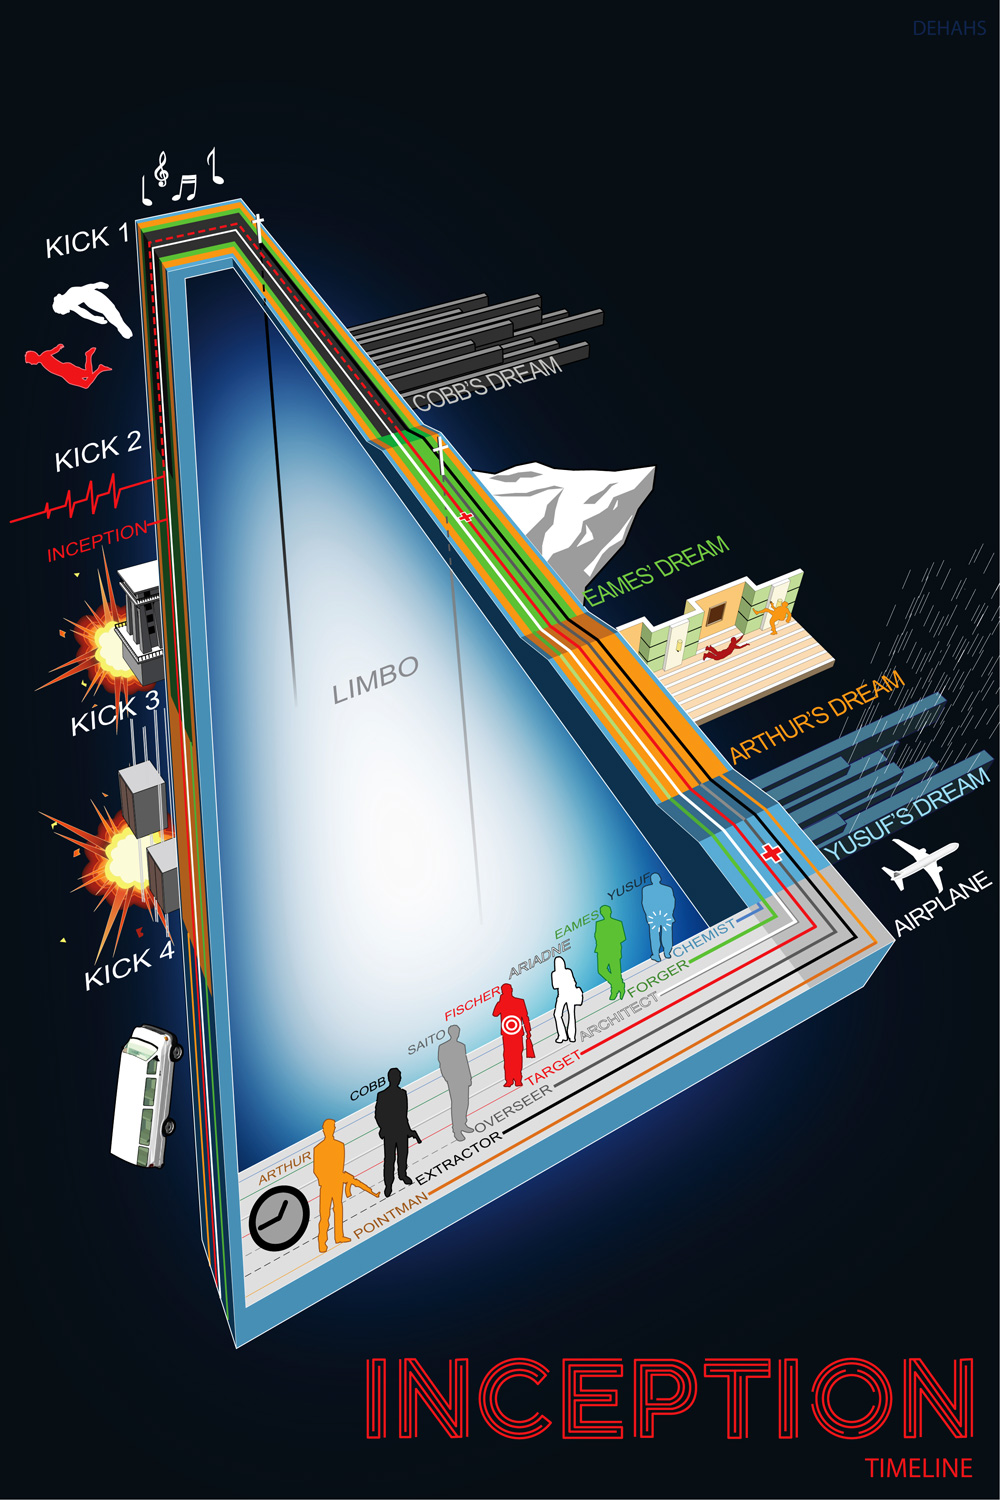 Inception - The Infographic